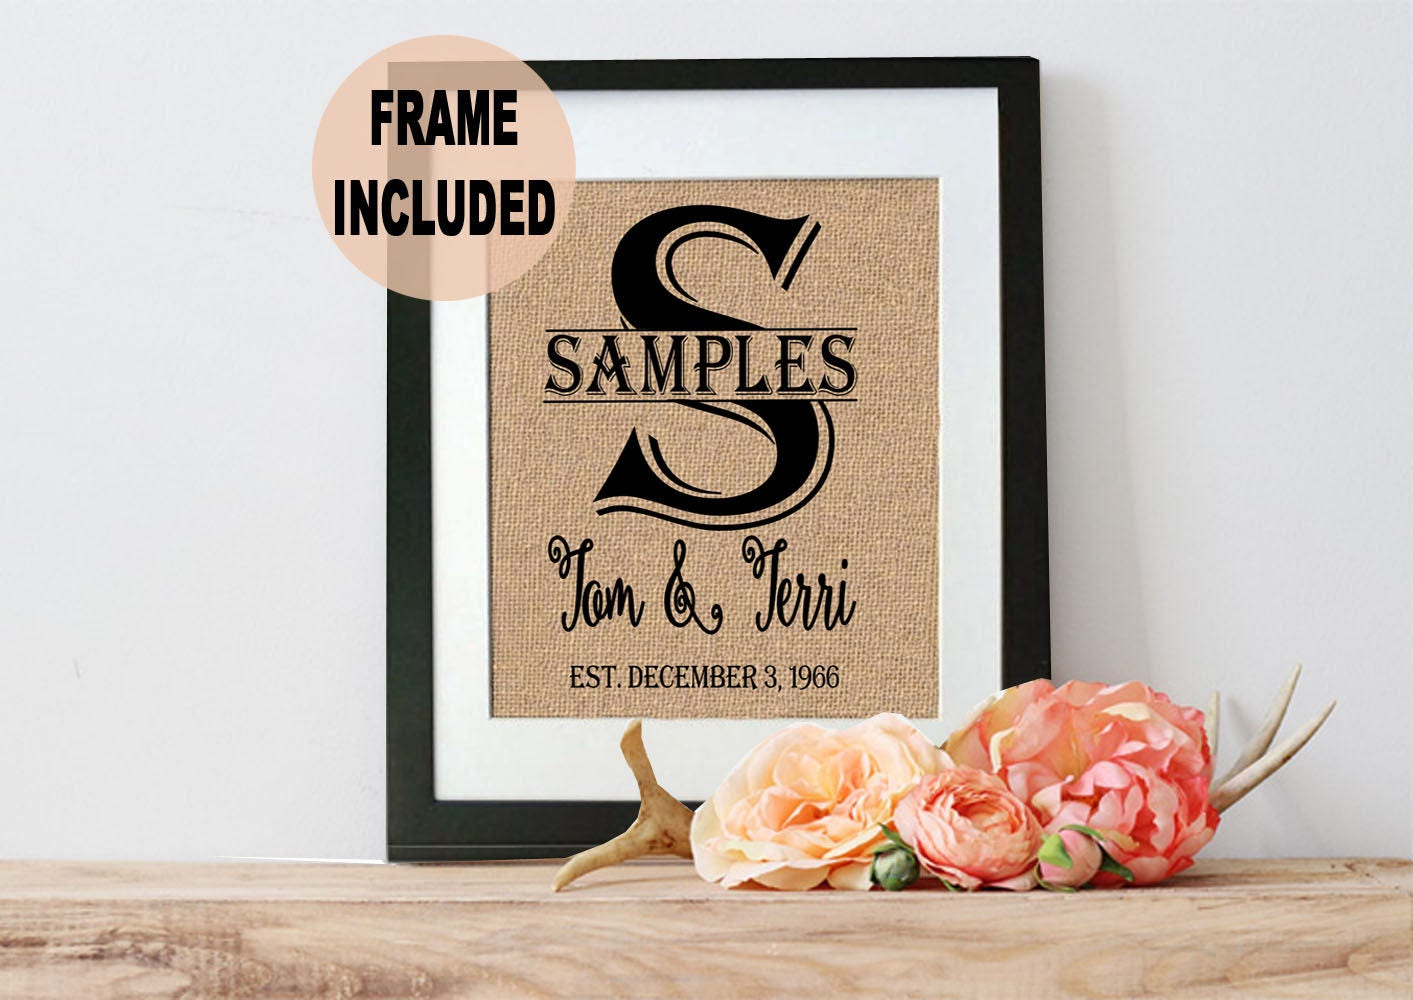 Monogrammed Wedding Gifts For Couple : Wedding Gifts for Couple Personalized Framed Burlap